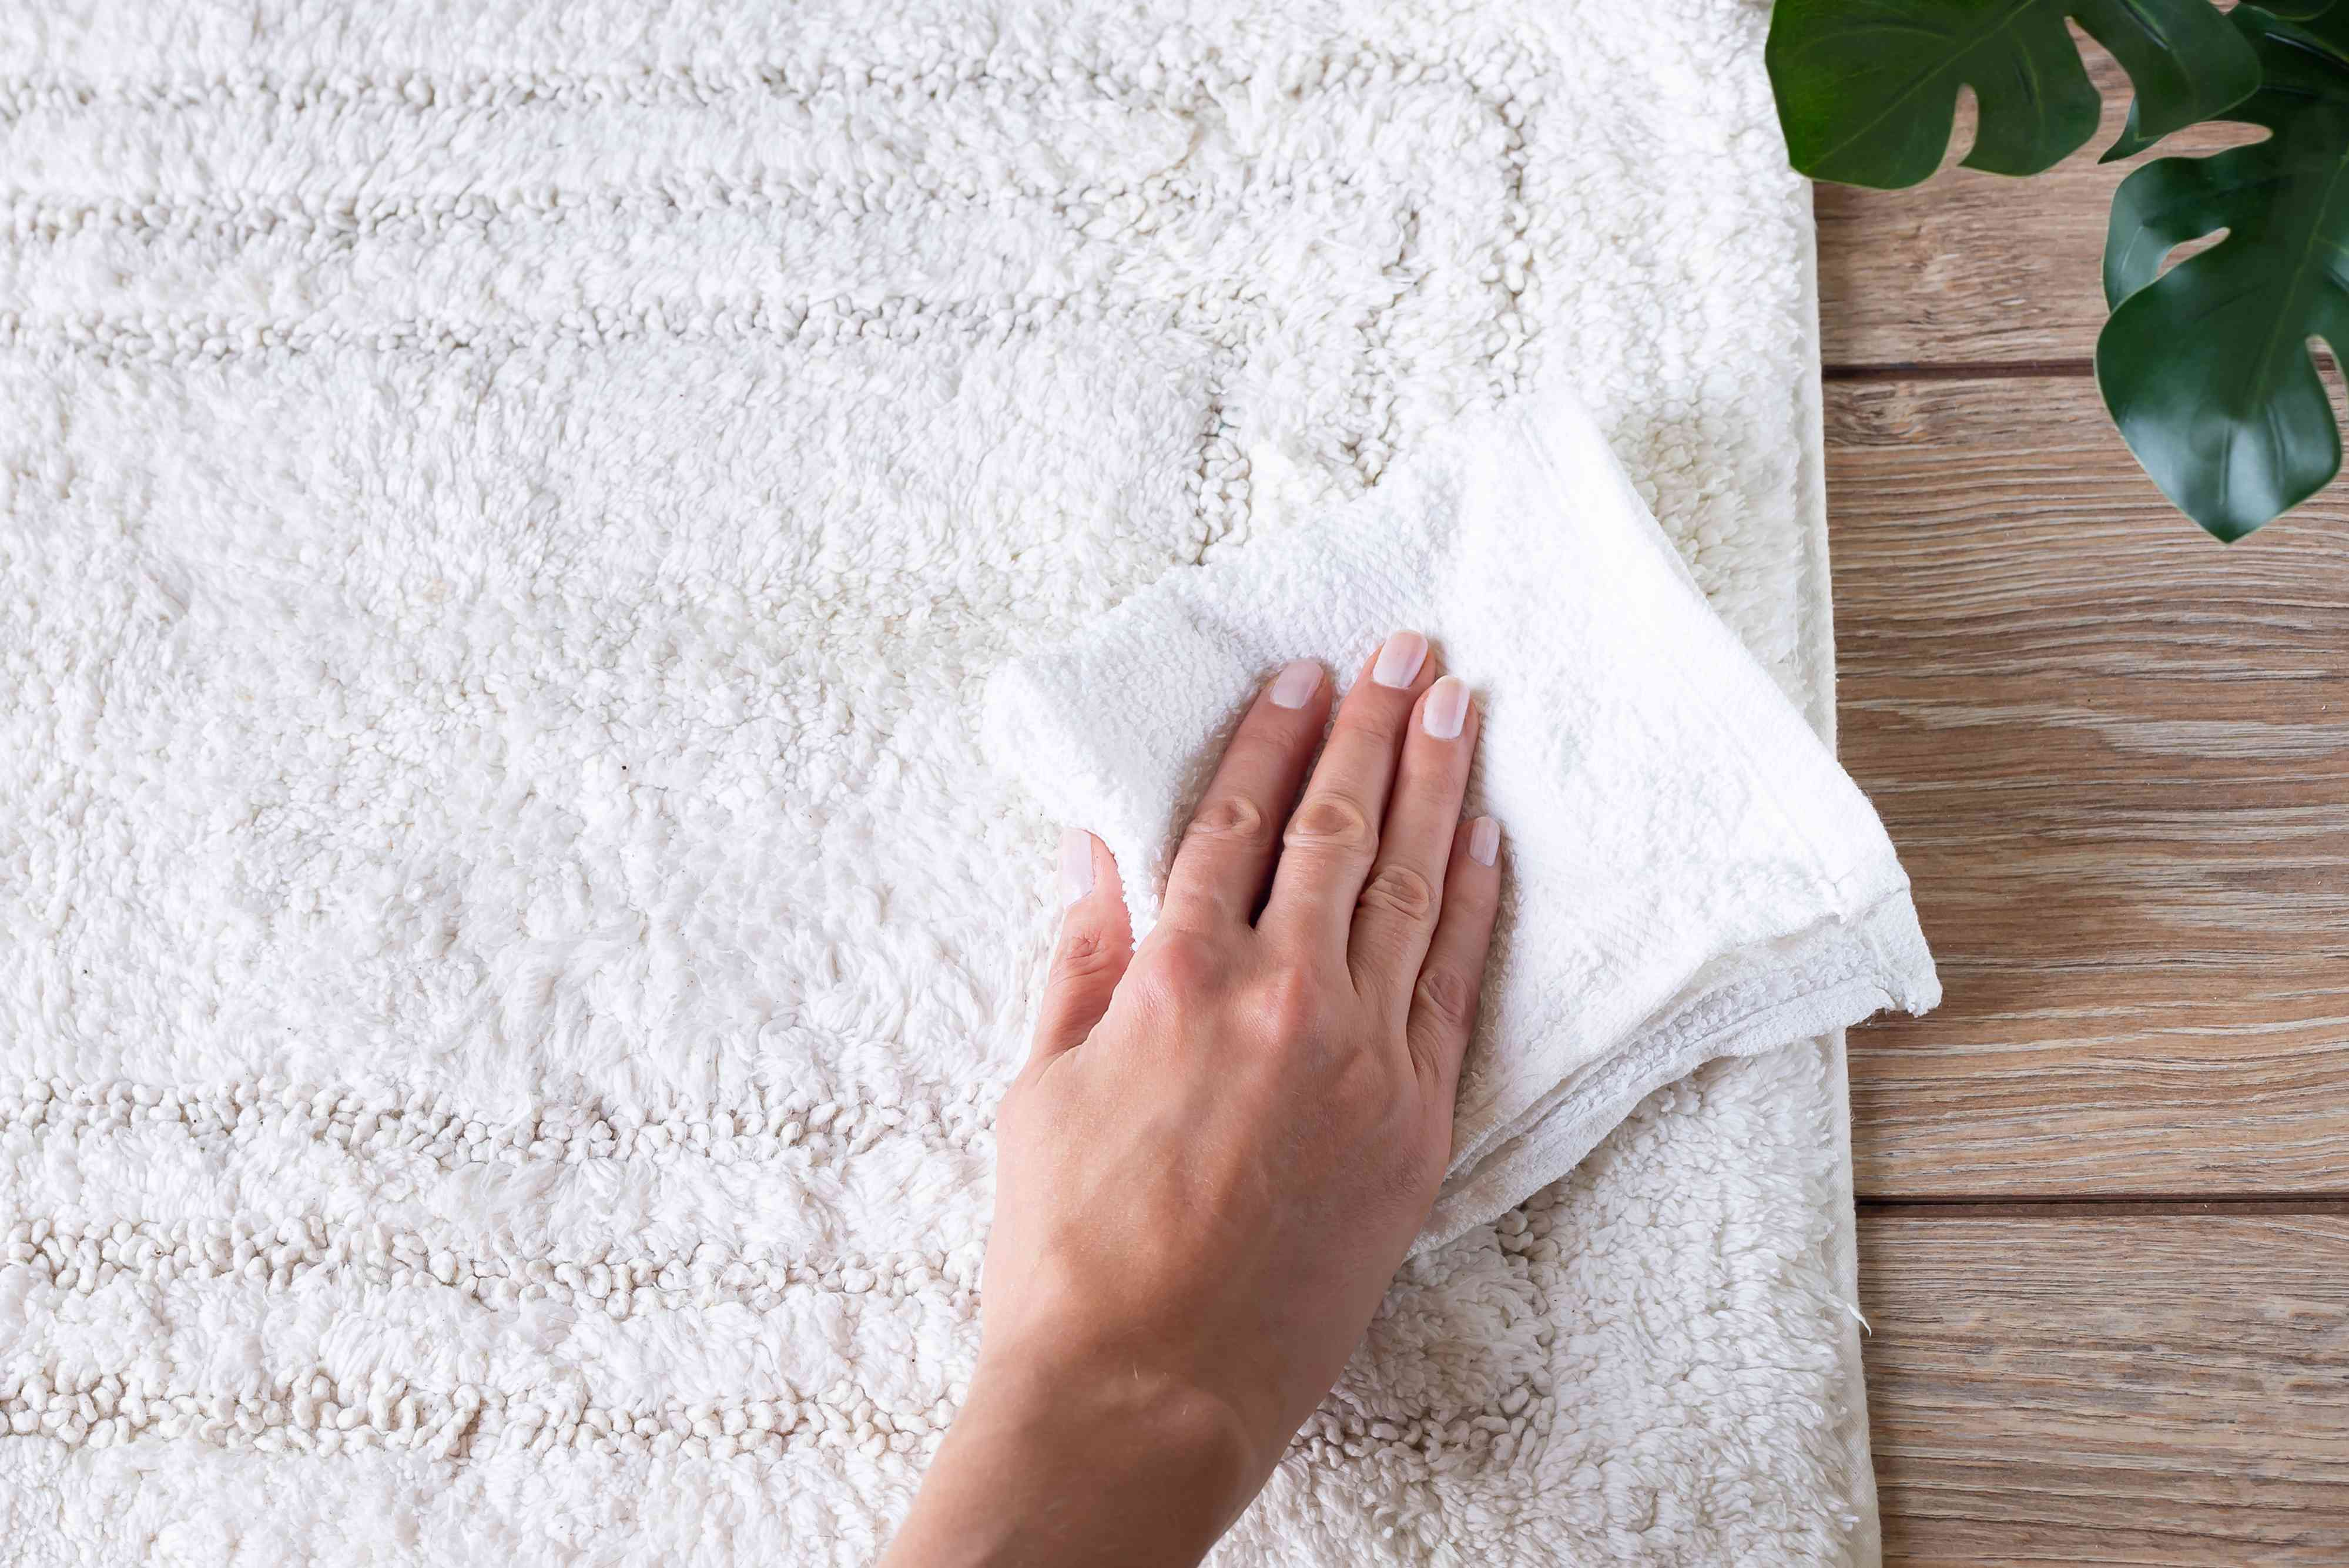 person blotting a stain on a rug